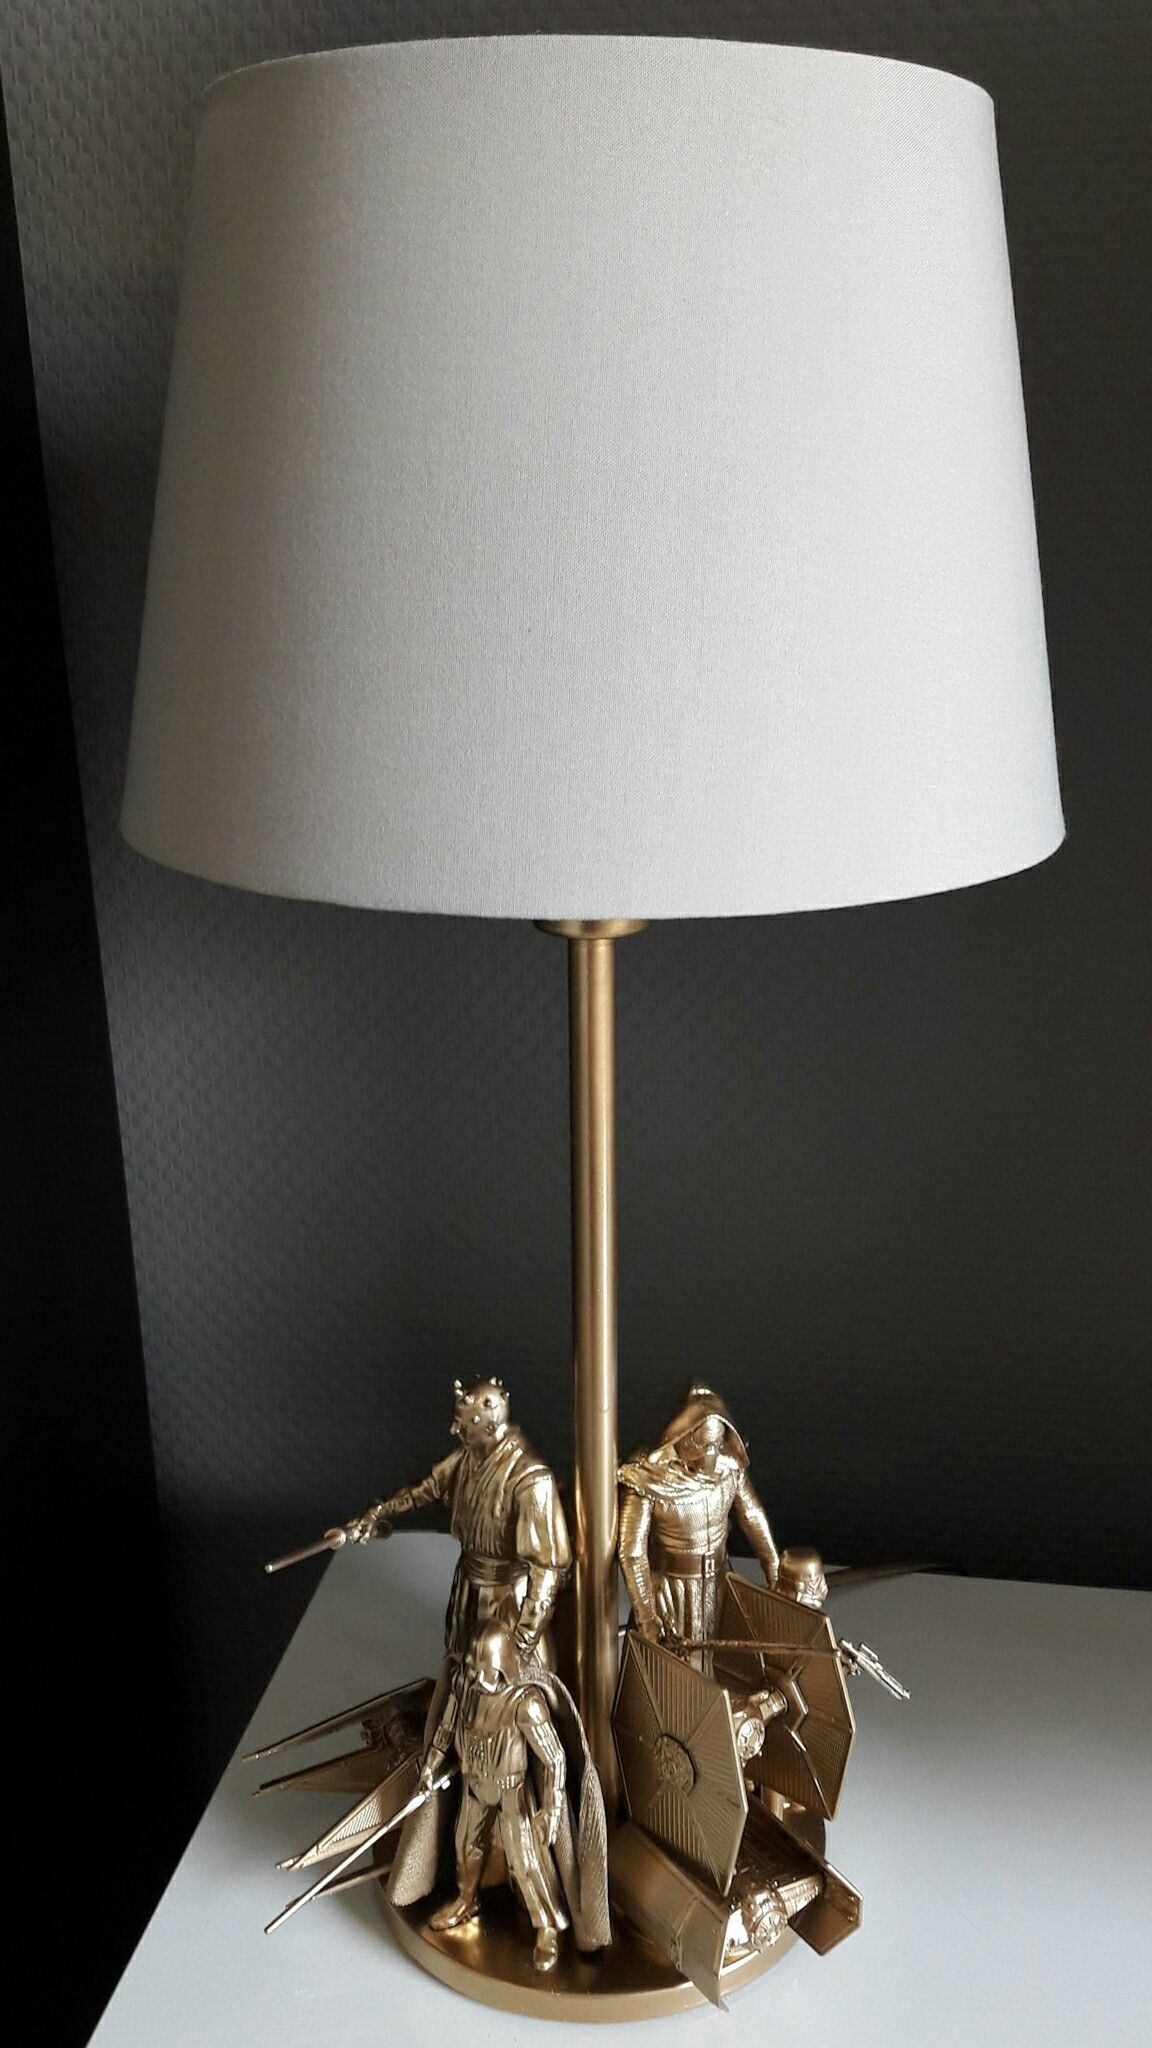 Star Wars Lamp Diy Ikea Hack Star Wars Lamp Star Wars Bedroom Decor Star Wars Bedroom